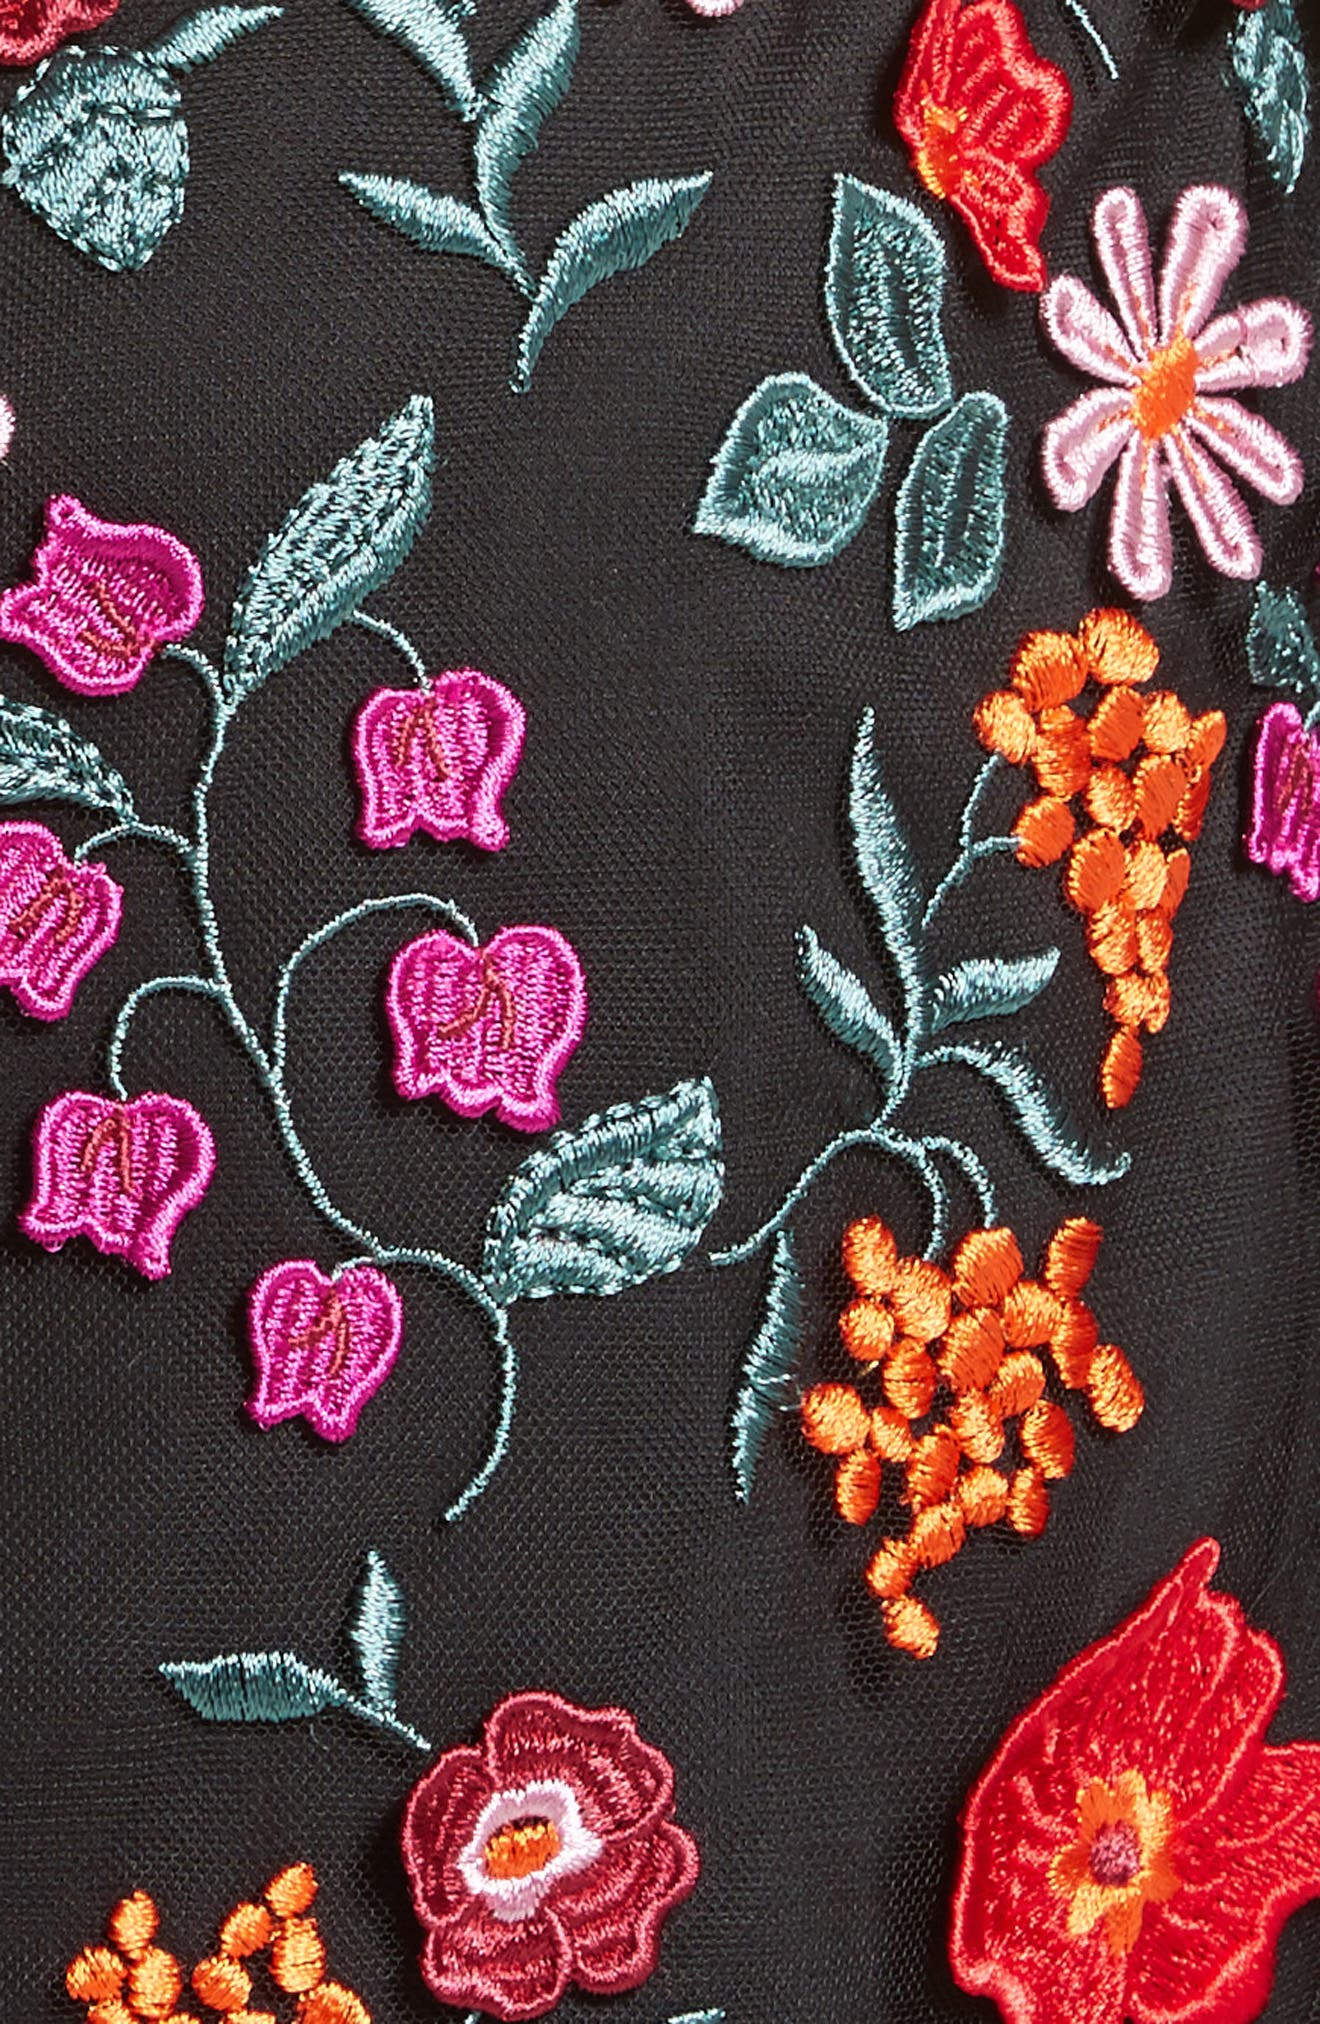 Floral Embroidered Pencil Dress,                             Alternate thumbnail 6, color,                             001